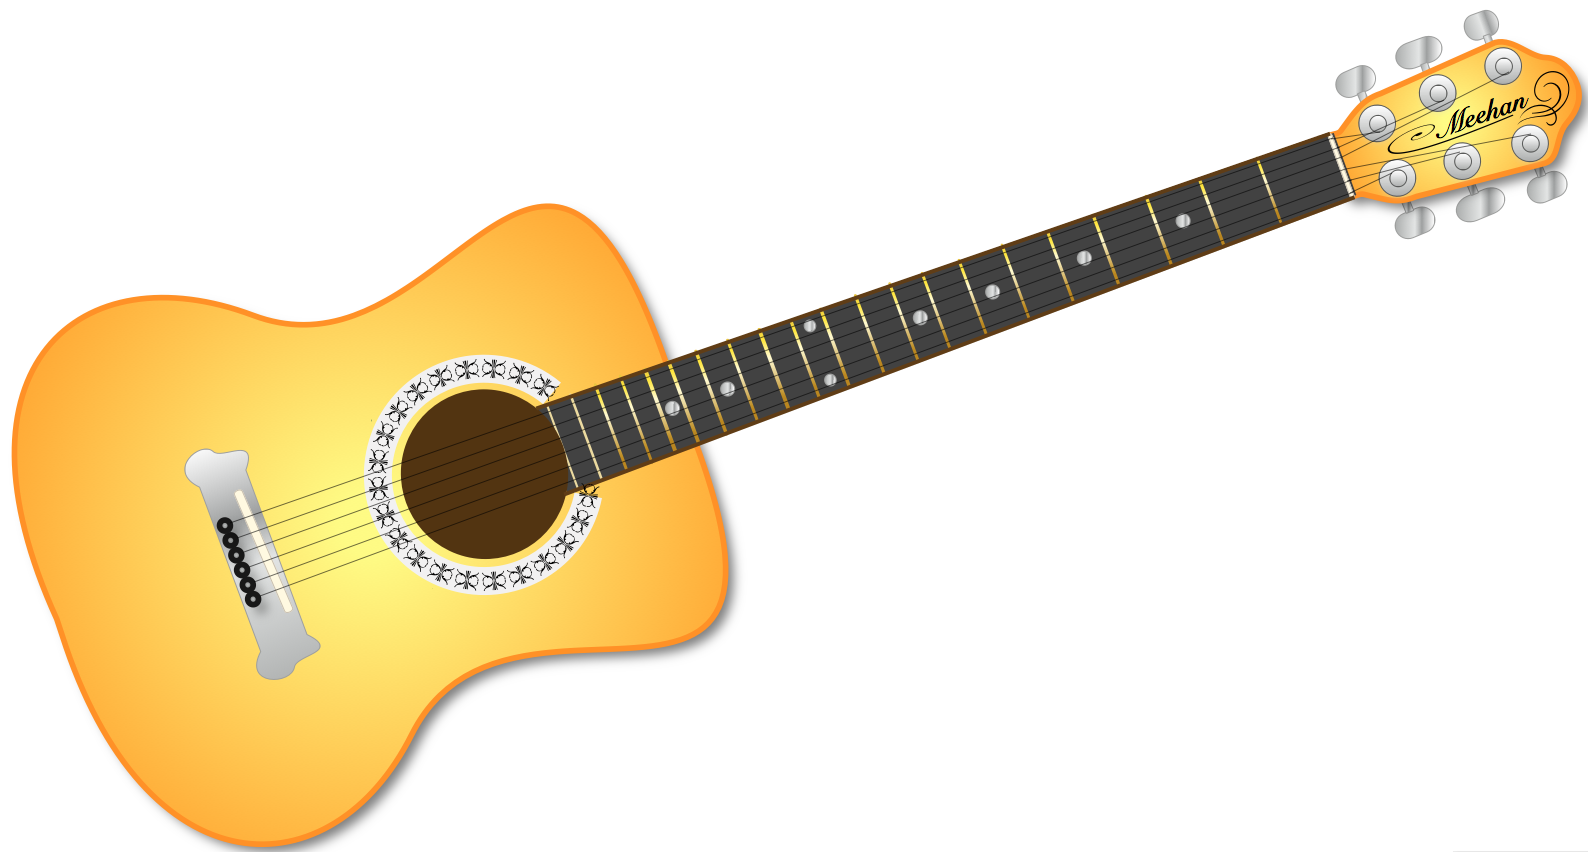 Guitar Black And White Music Png Clipart-Guitar Black And White Music Png Clipart Free Clip Art Images-5